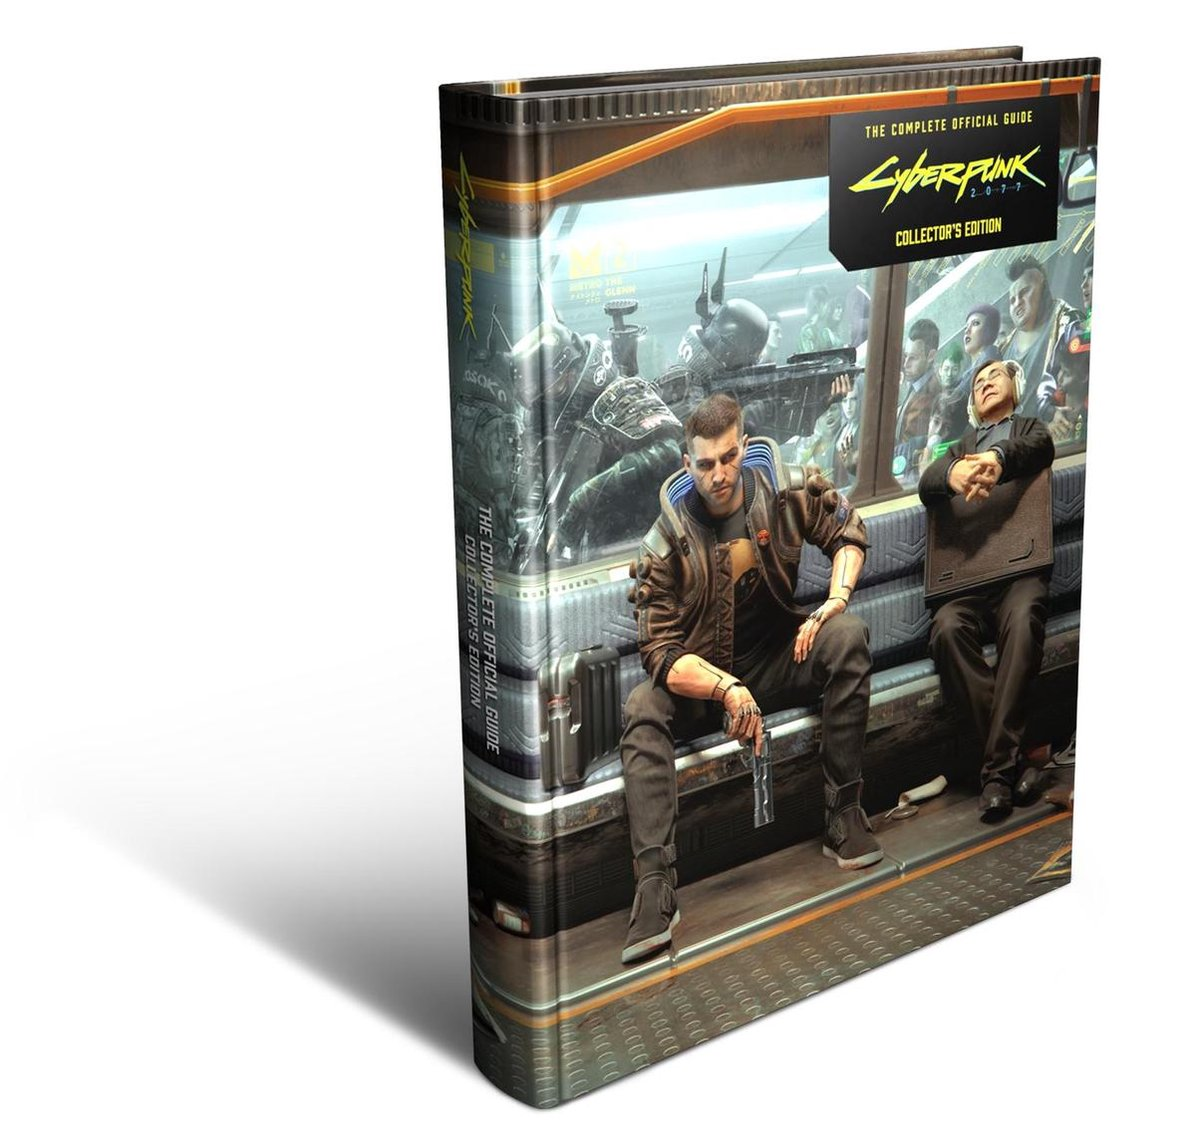 The Cyberpunk 2077 Complete Official Guide - Collector's Edition